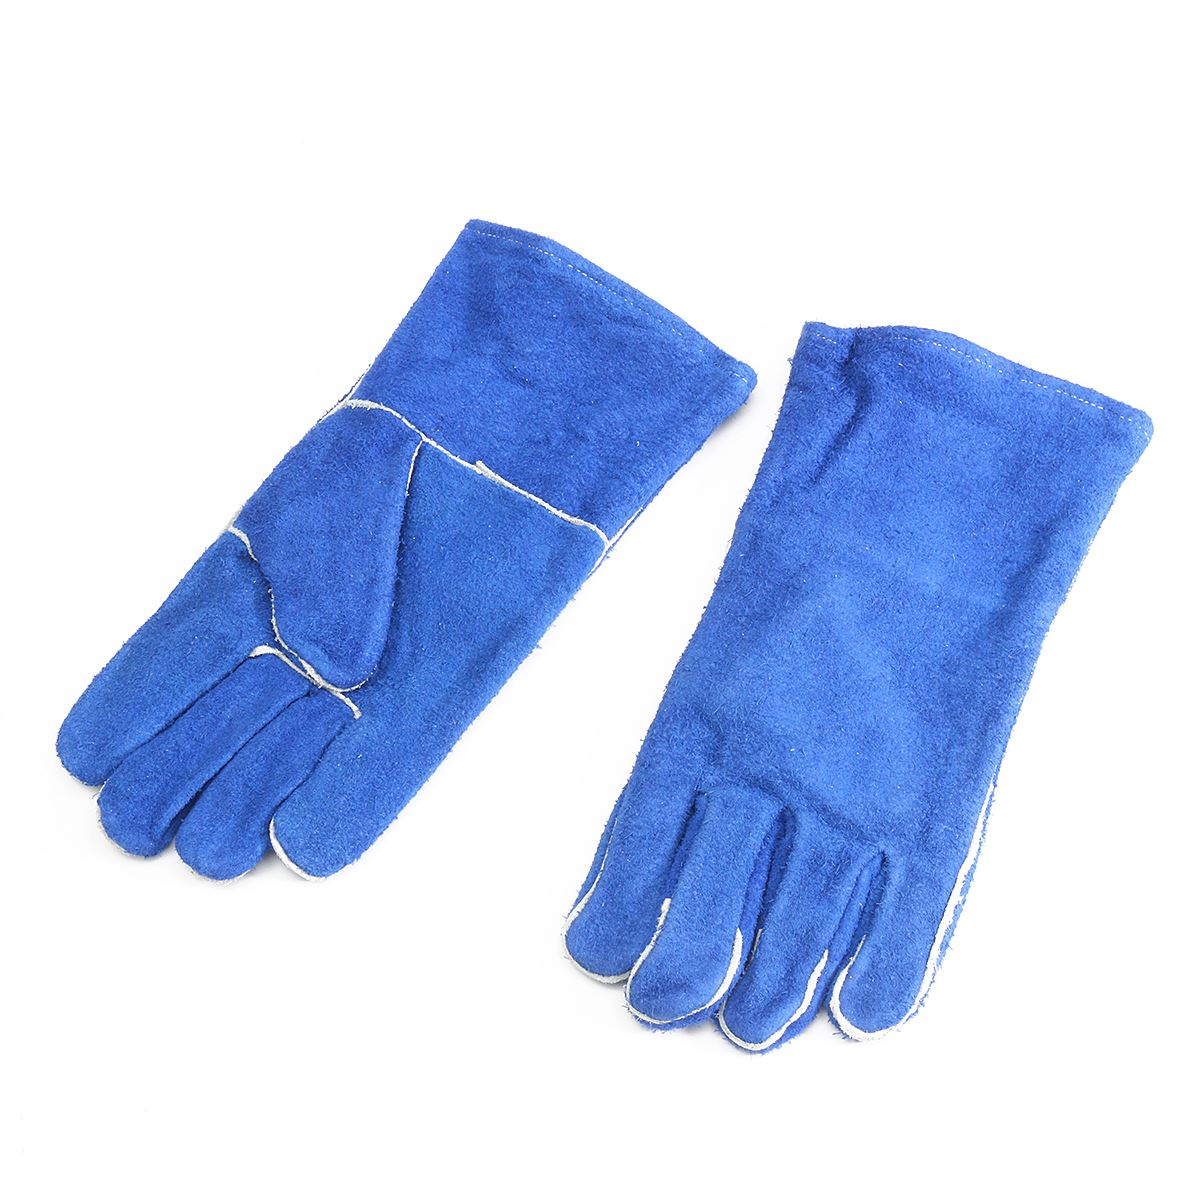 Gauntlet cuff leather work gloves - Blue Woodburner Gloves Long Lined Welders Gauntlets Log Fire High Temp Stove Xl Workplace Safety Gloves